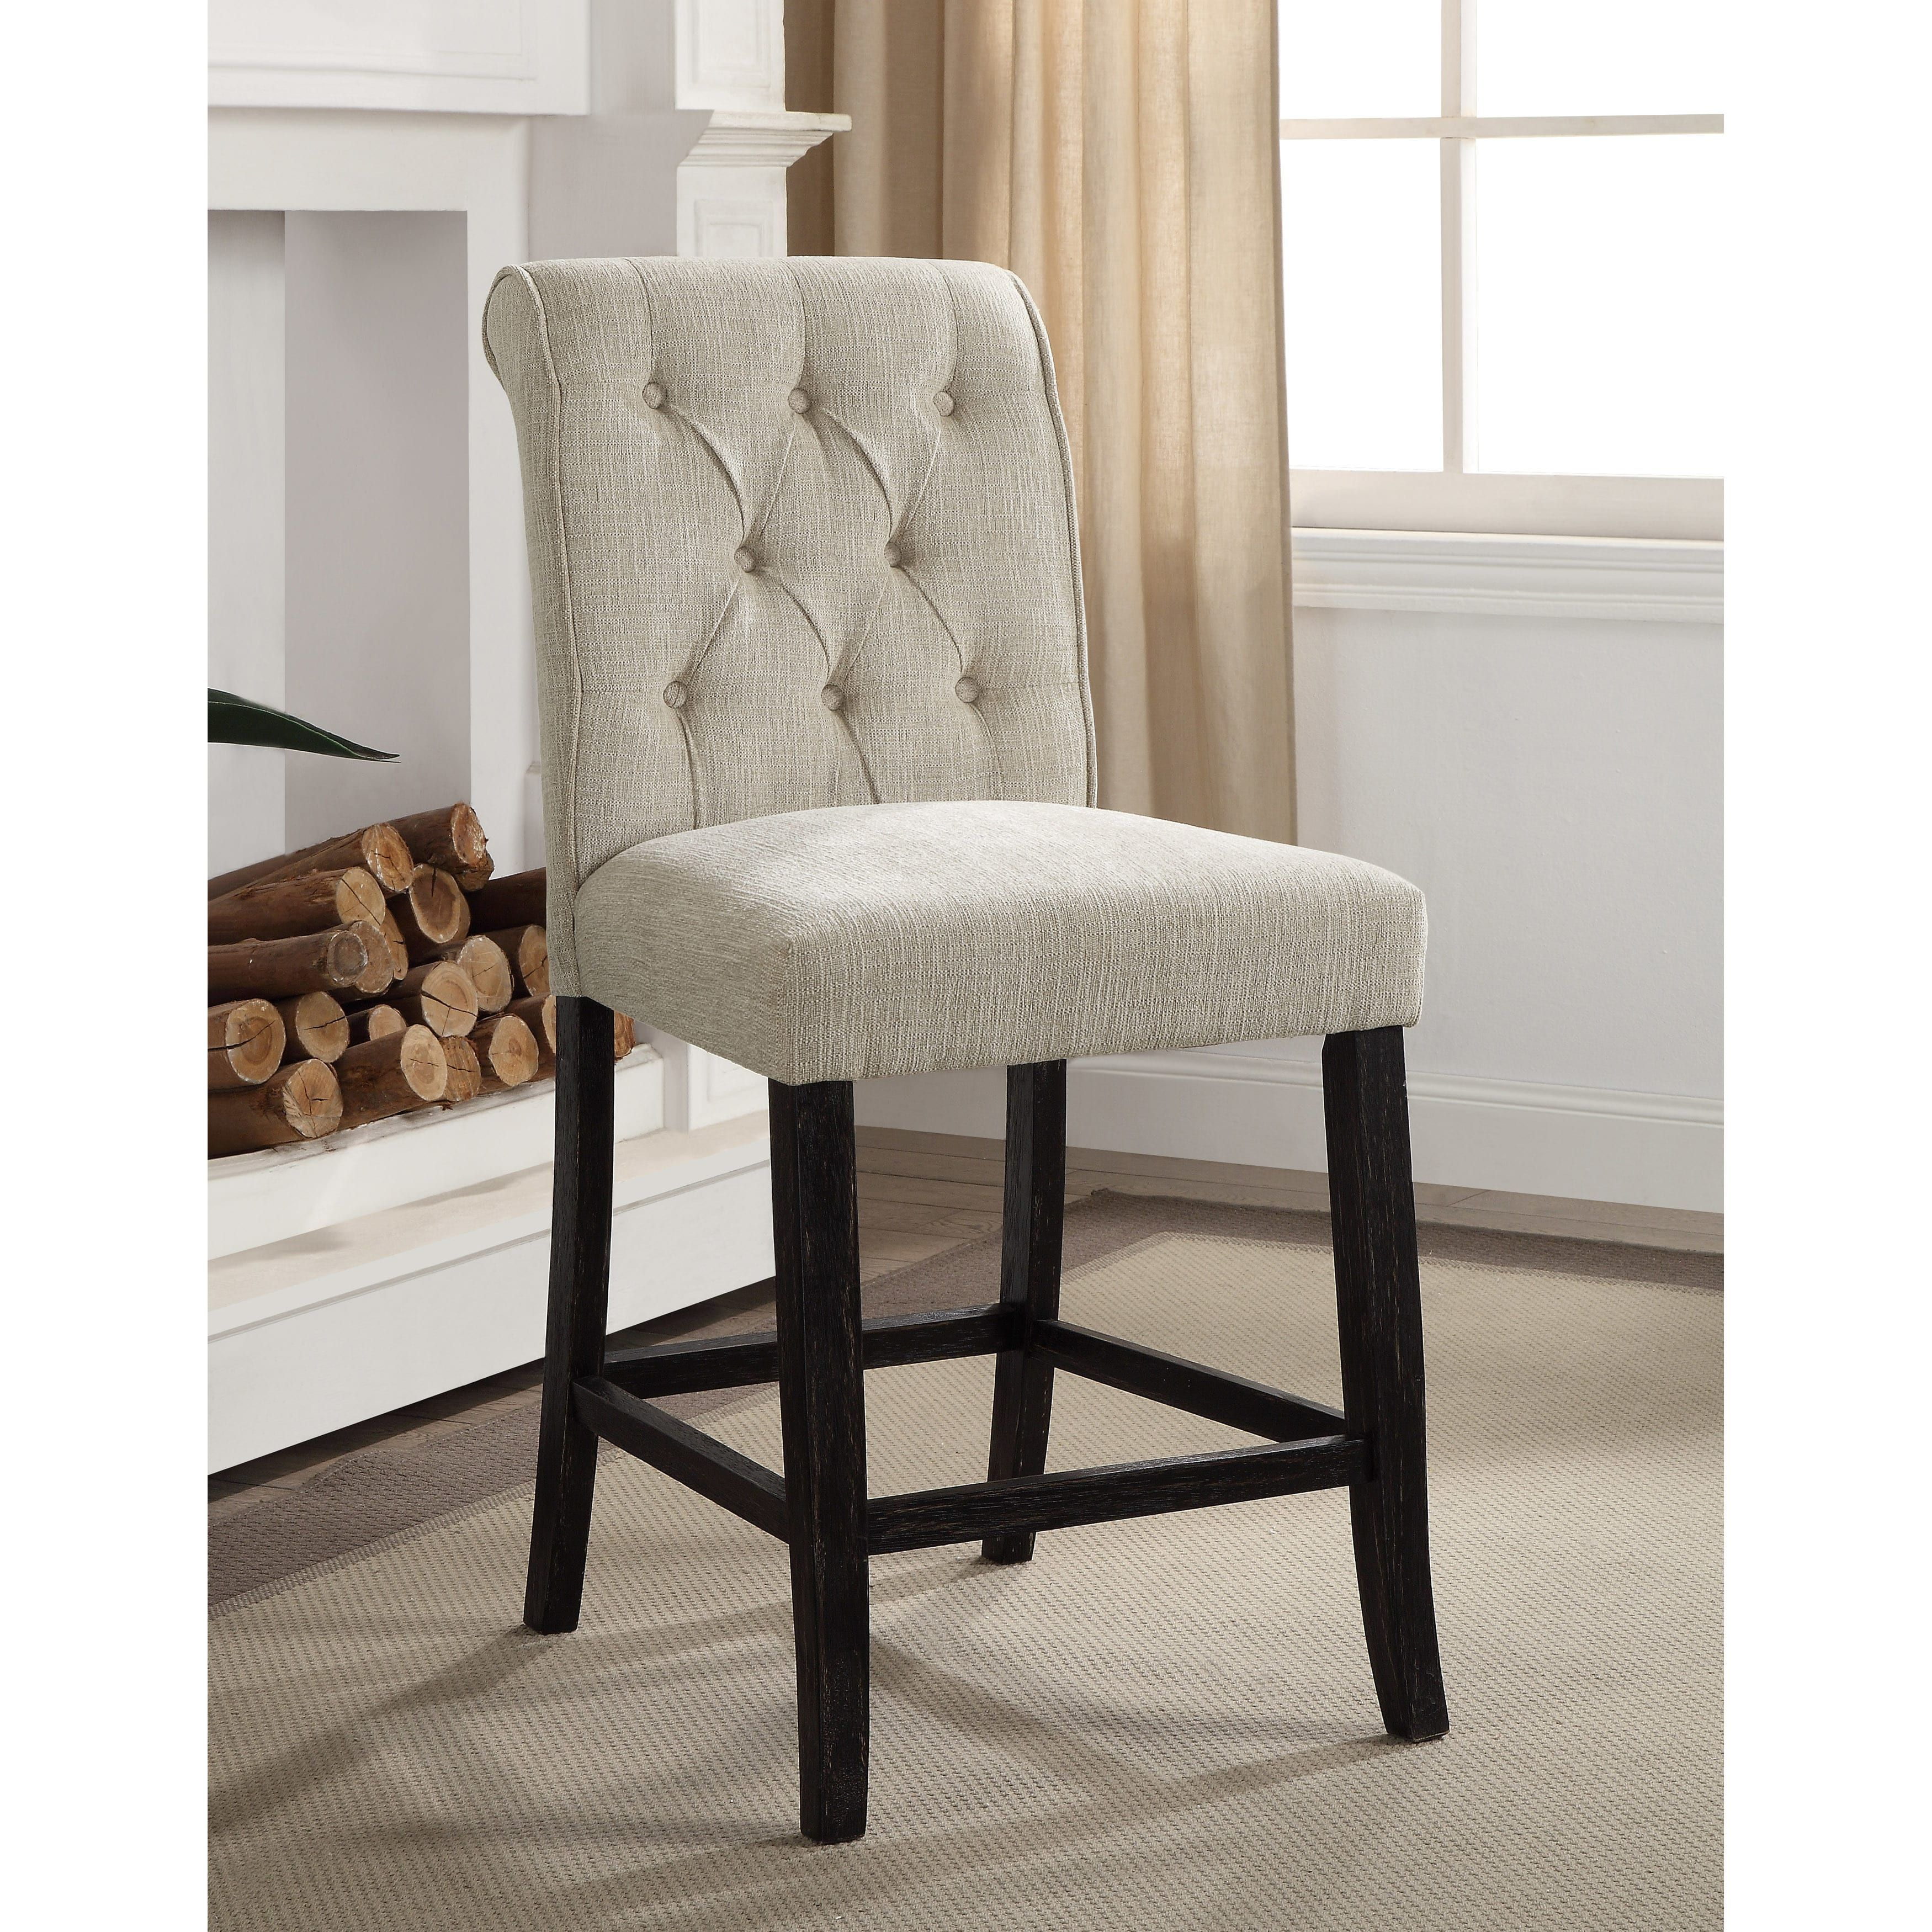 Furniture Of America Sheila Contemporary On Tufted Counter Height Chair